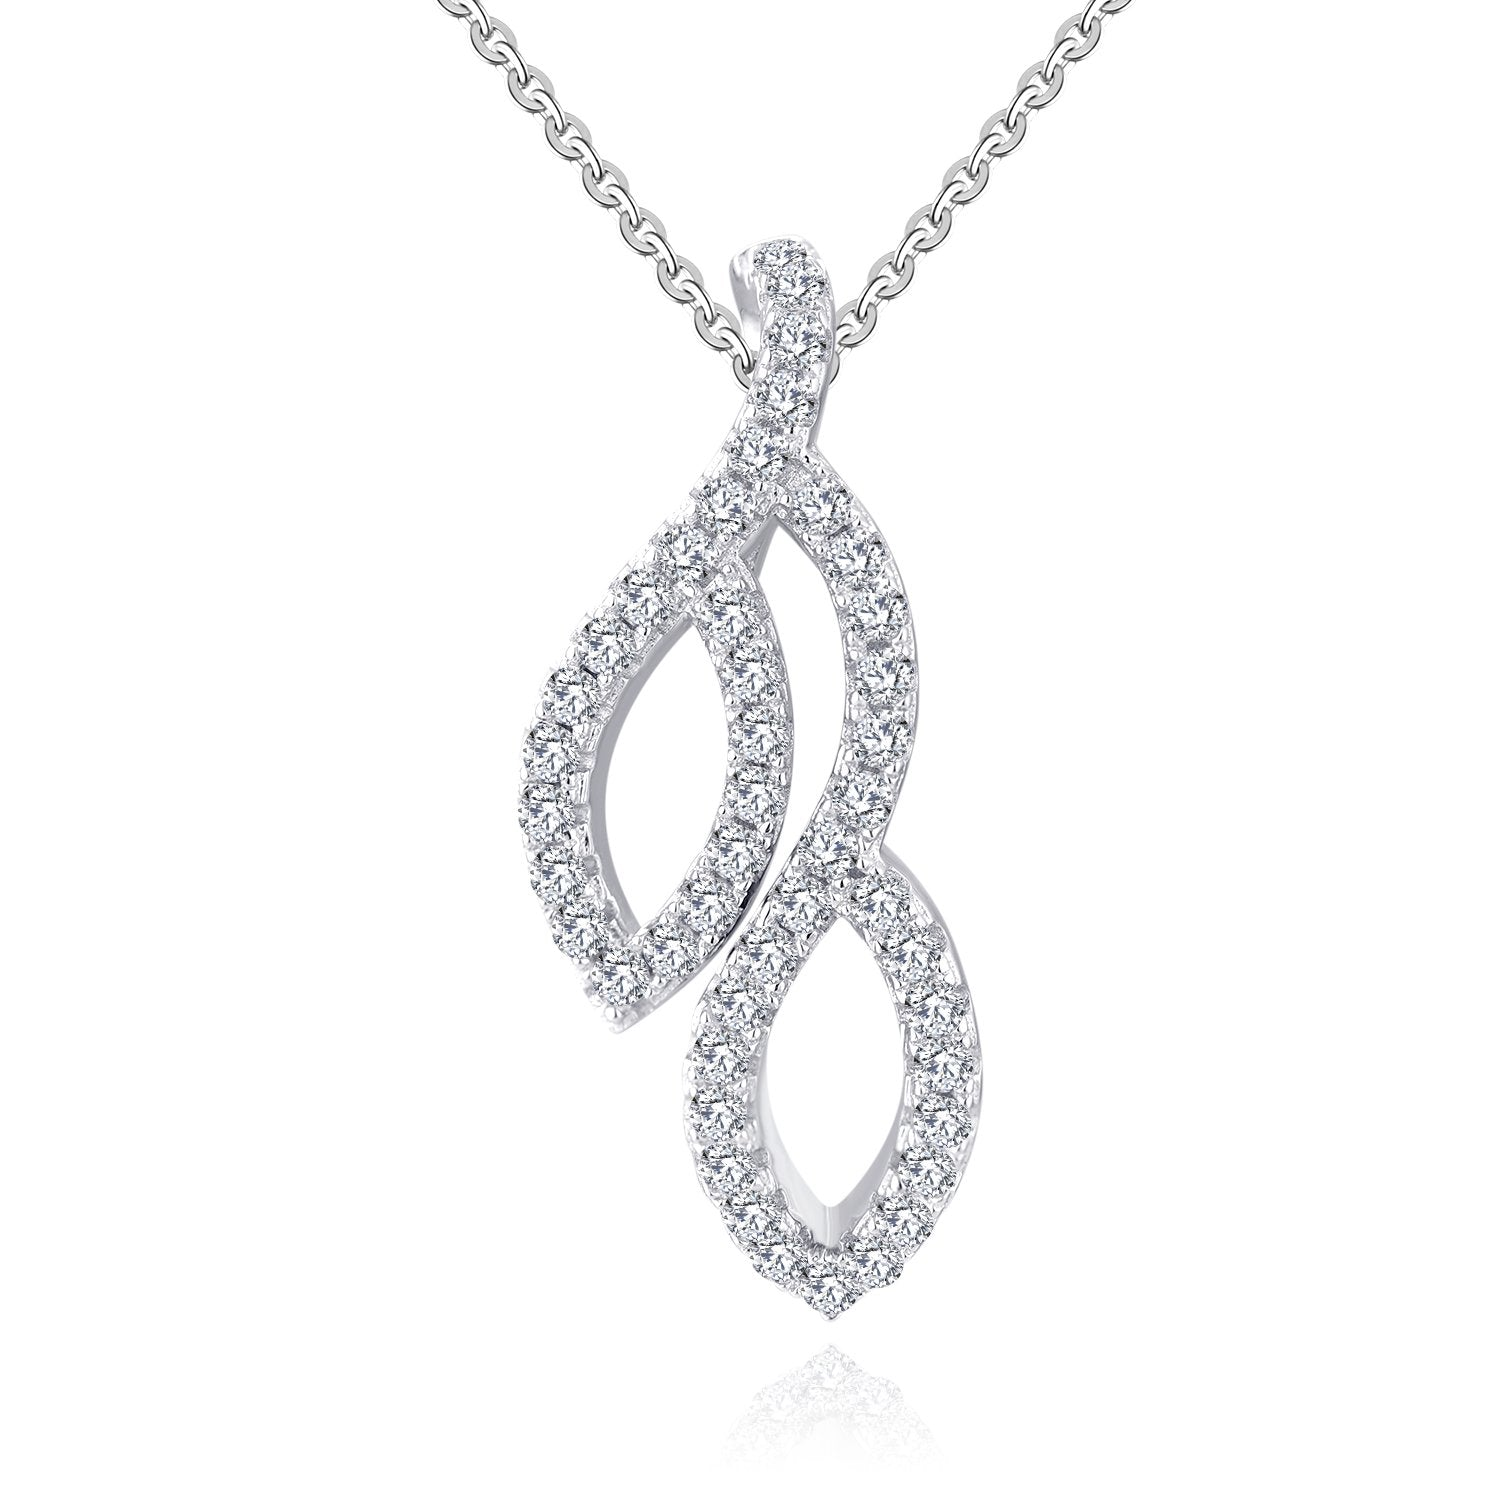 Farjary Classic 9K White Gold Leaves Pendant with 0.26cttw Round Brilliant Diamond for Women Gift